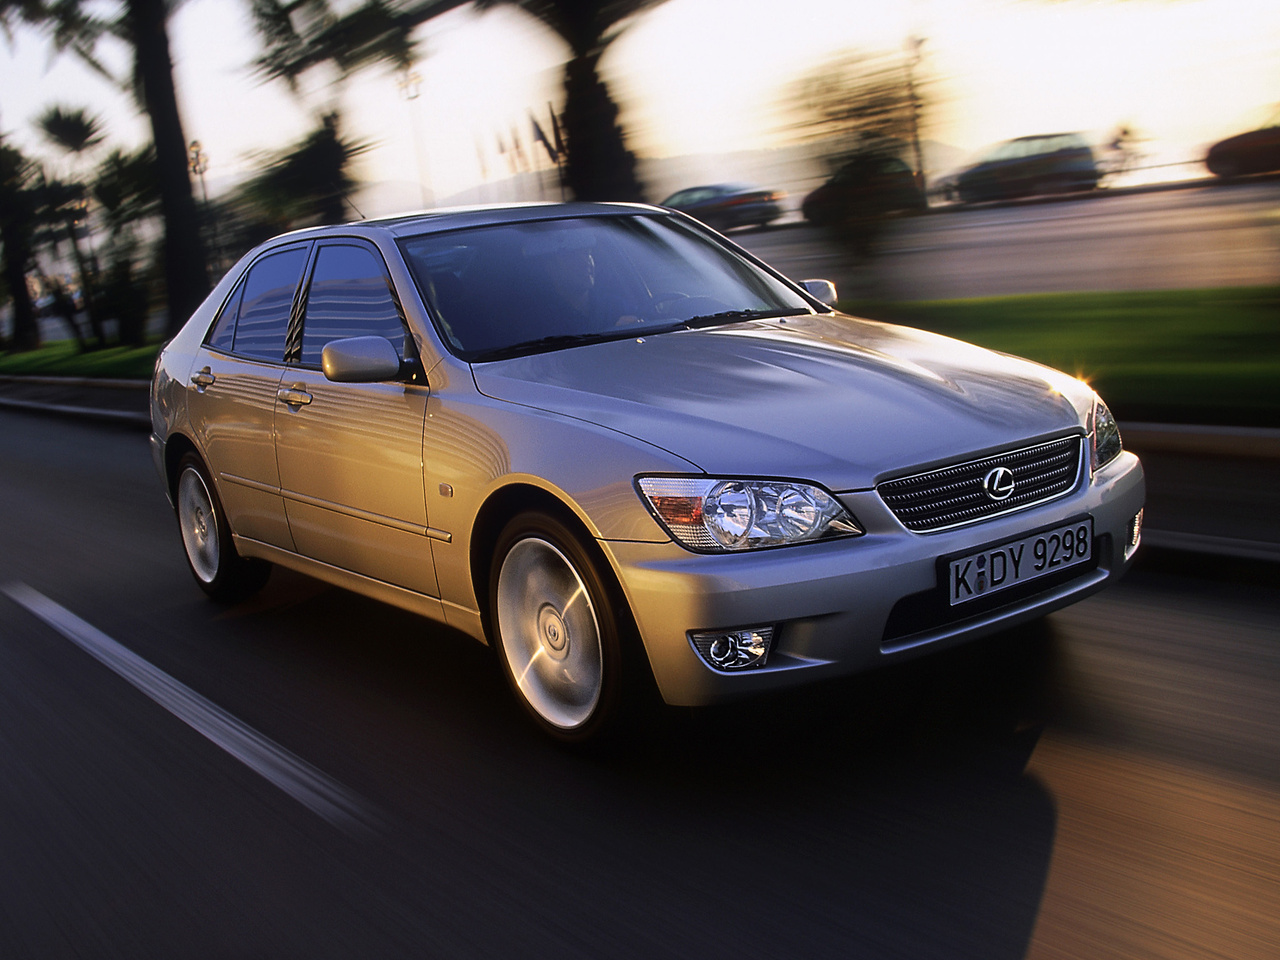 lexus is 200 1999 technical specifications interior and exterior photo. Black Bedroom Furniture Sets. Home Design Ideas